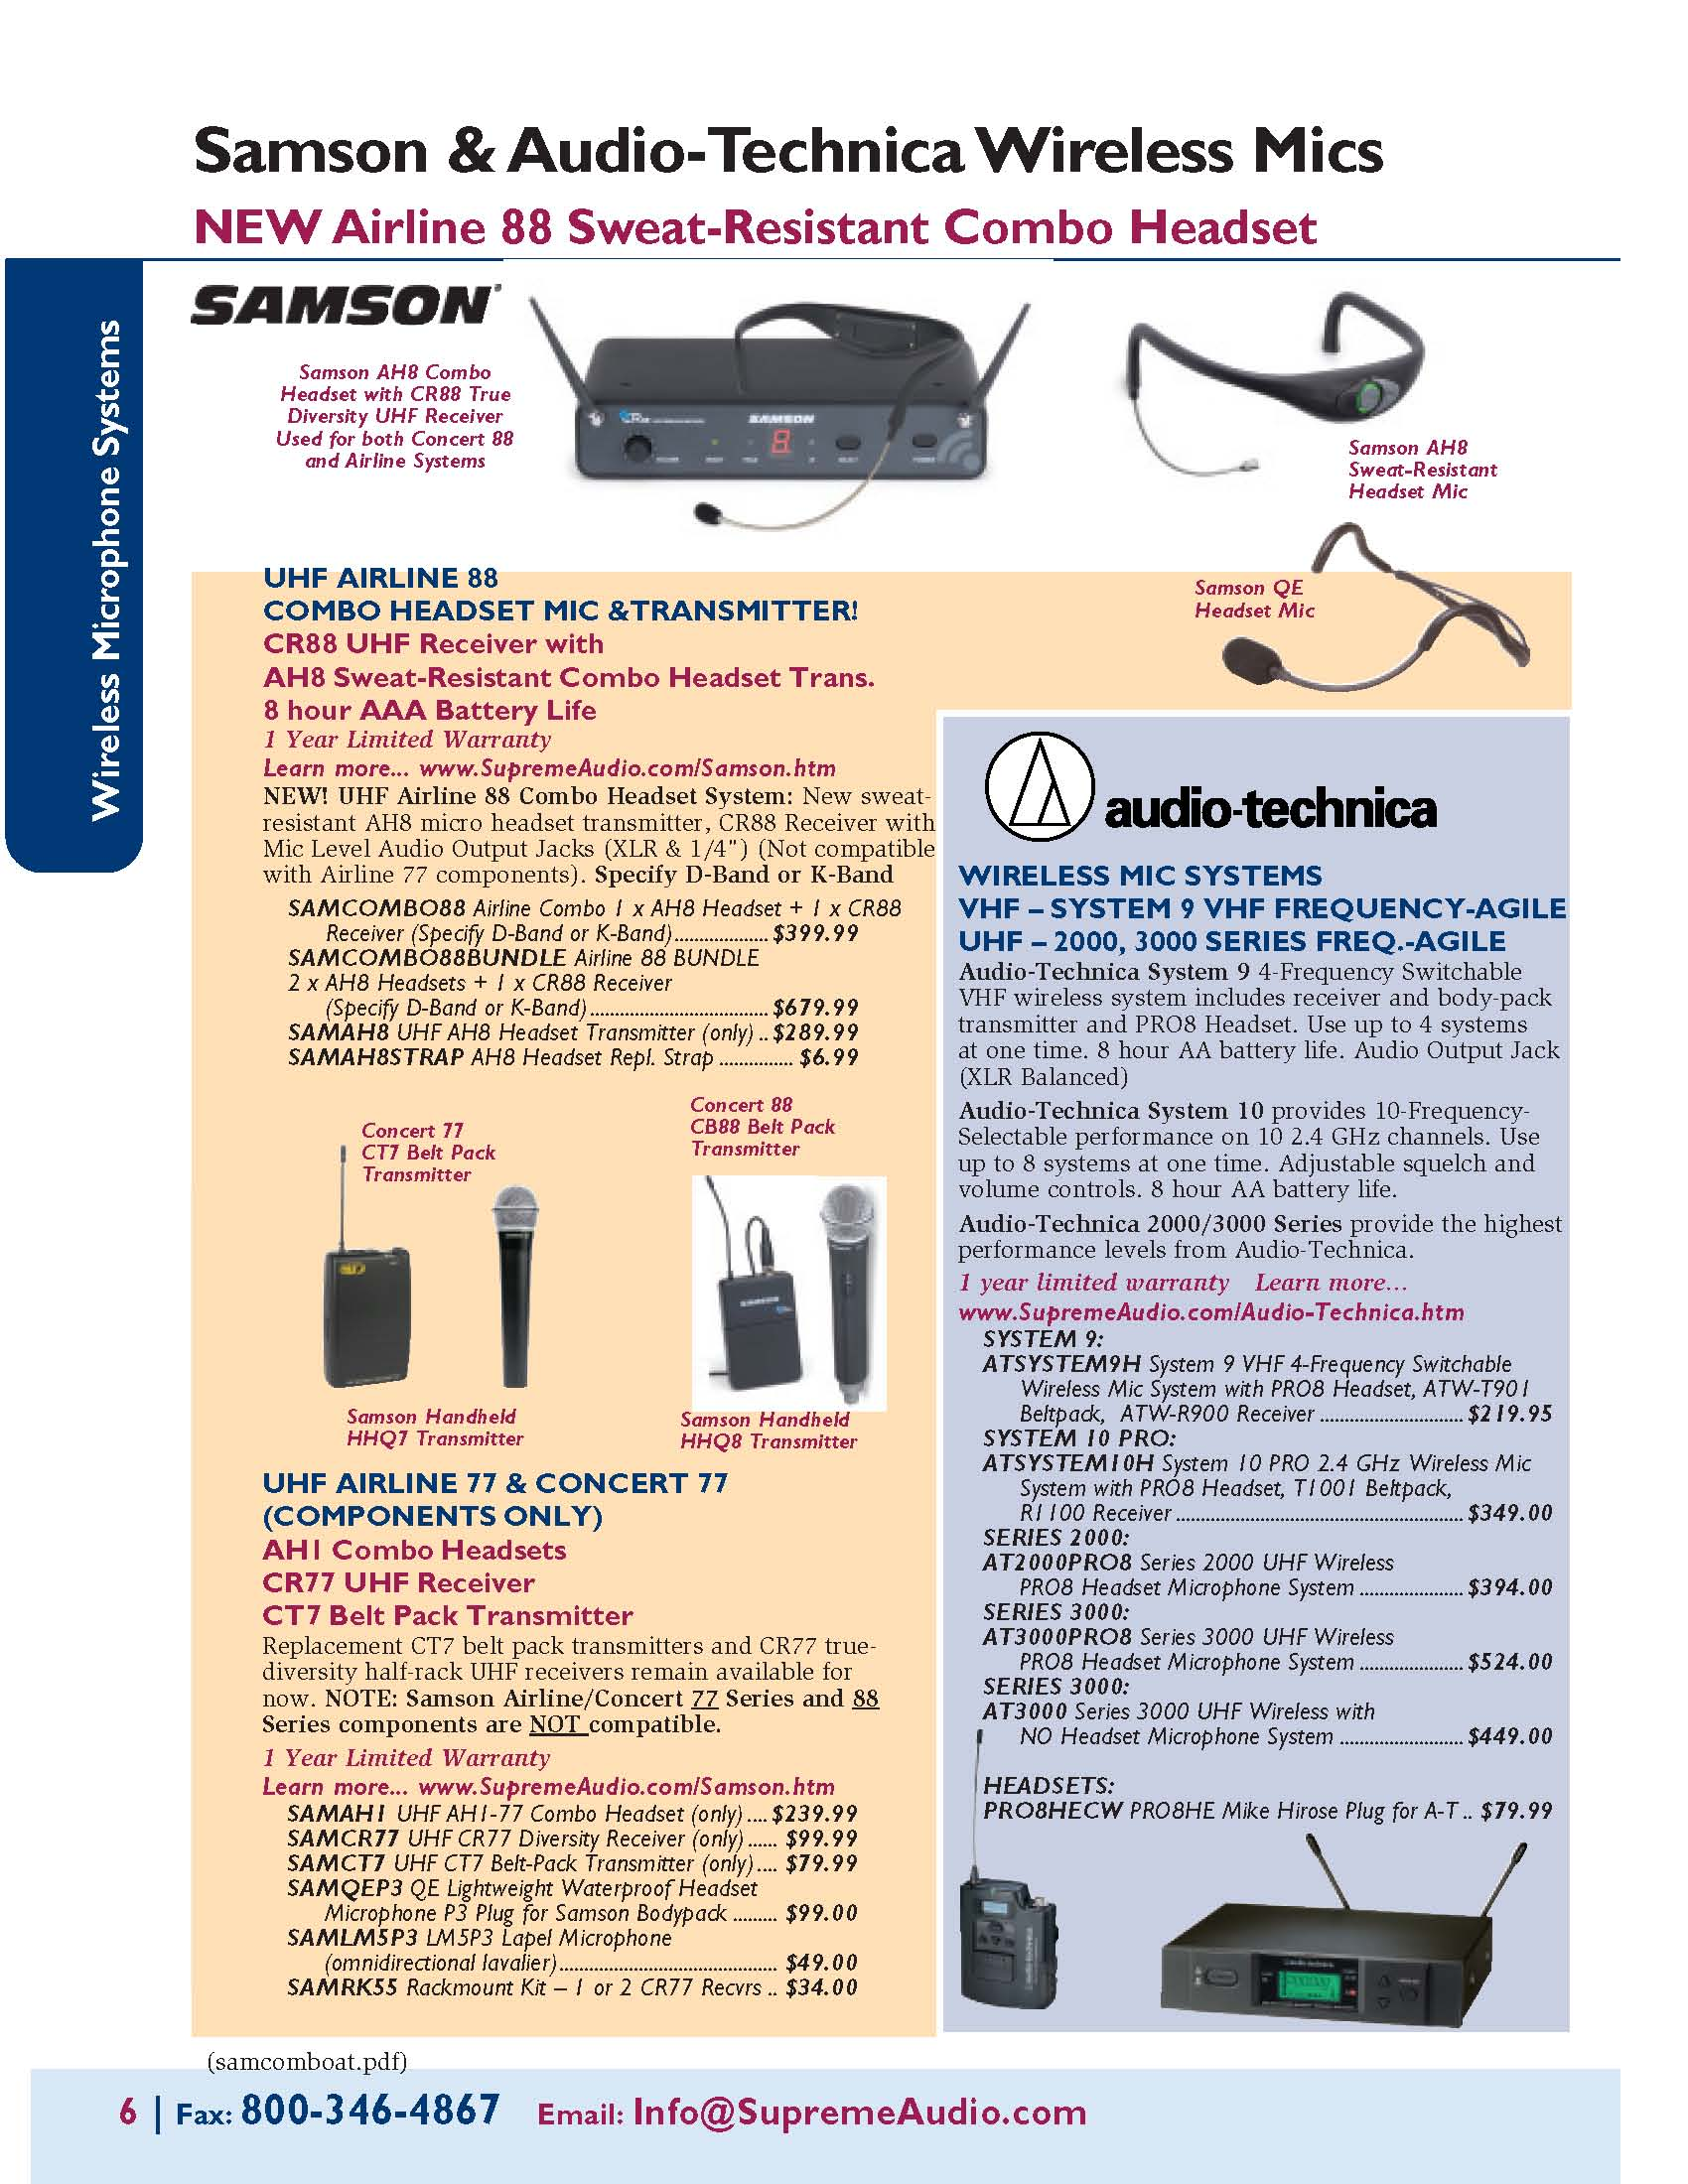 Samson Airline 88 & Audio-Technica Wireless Mic Systems